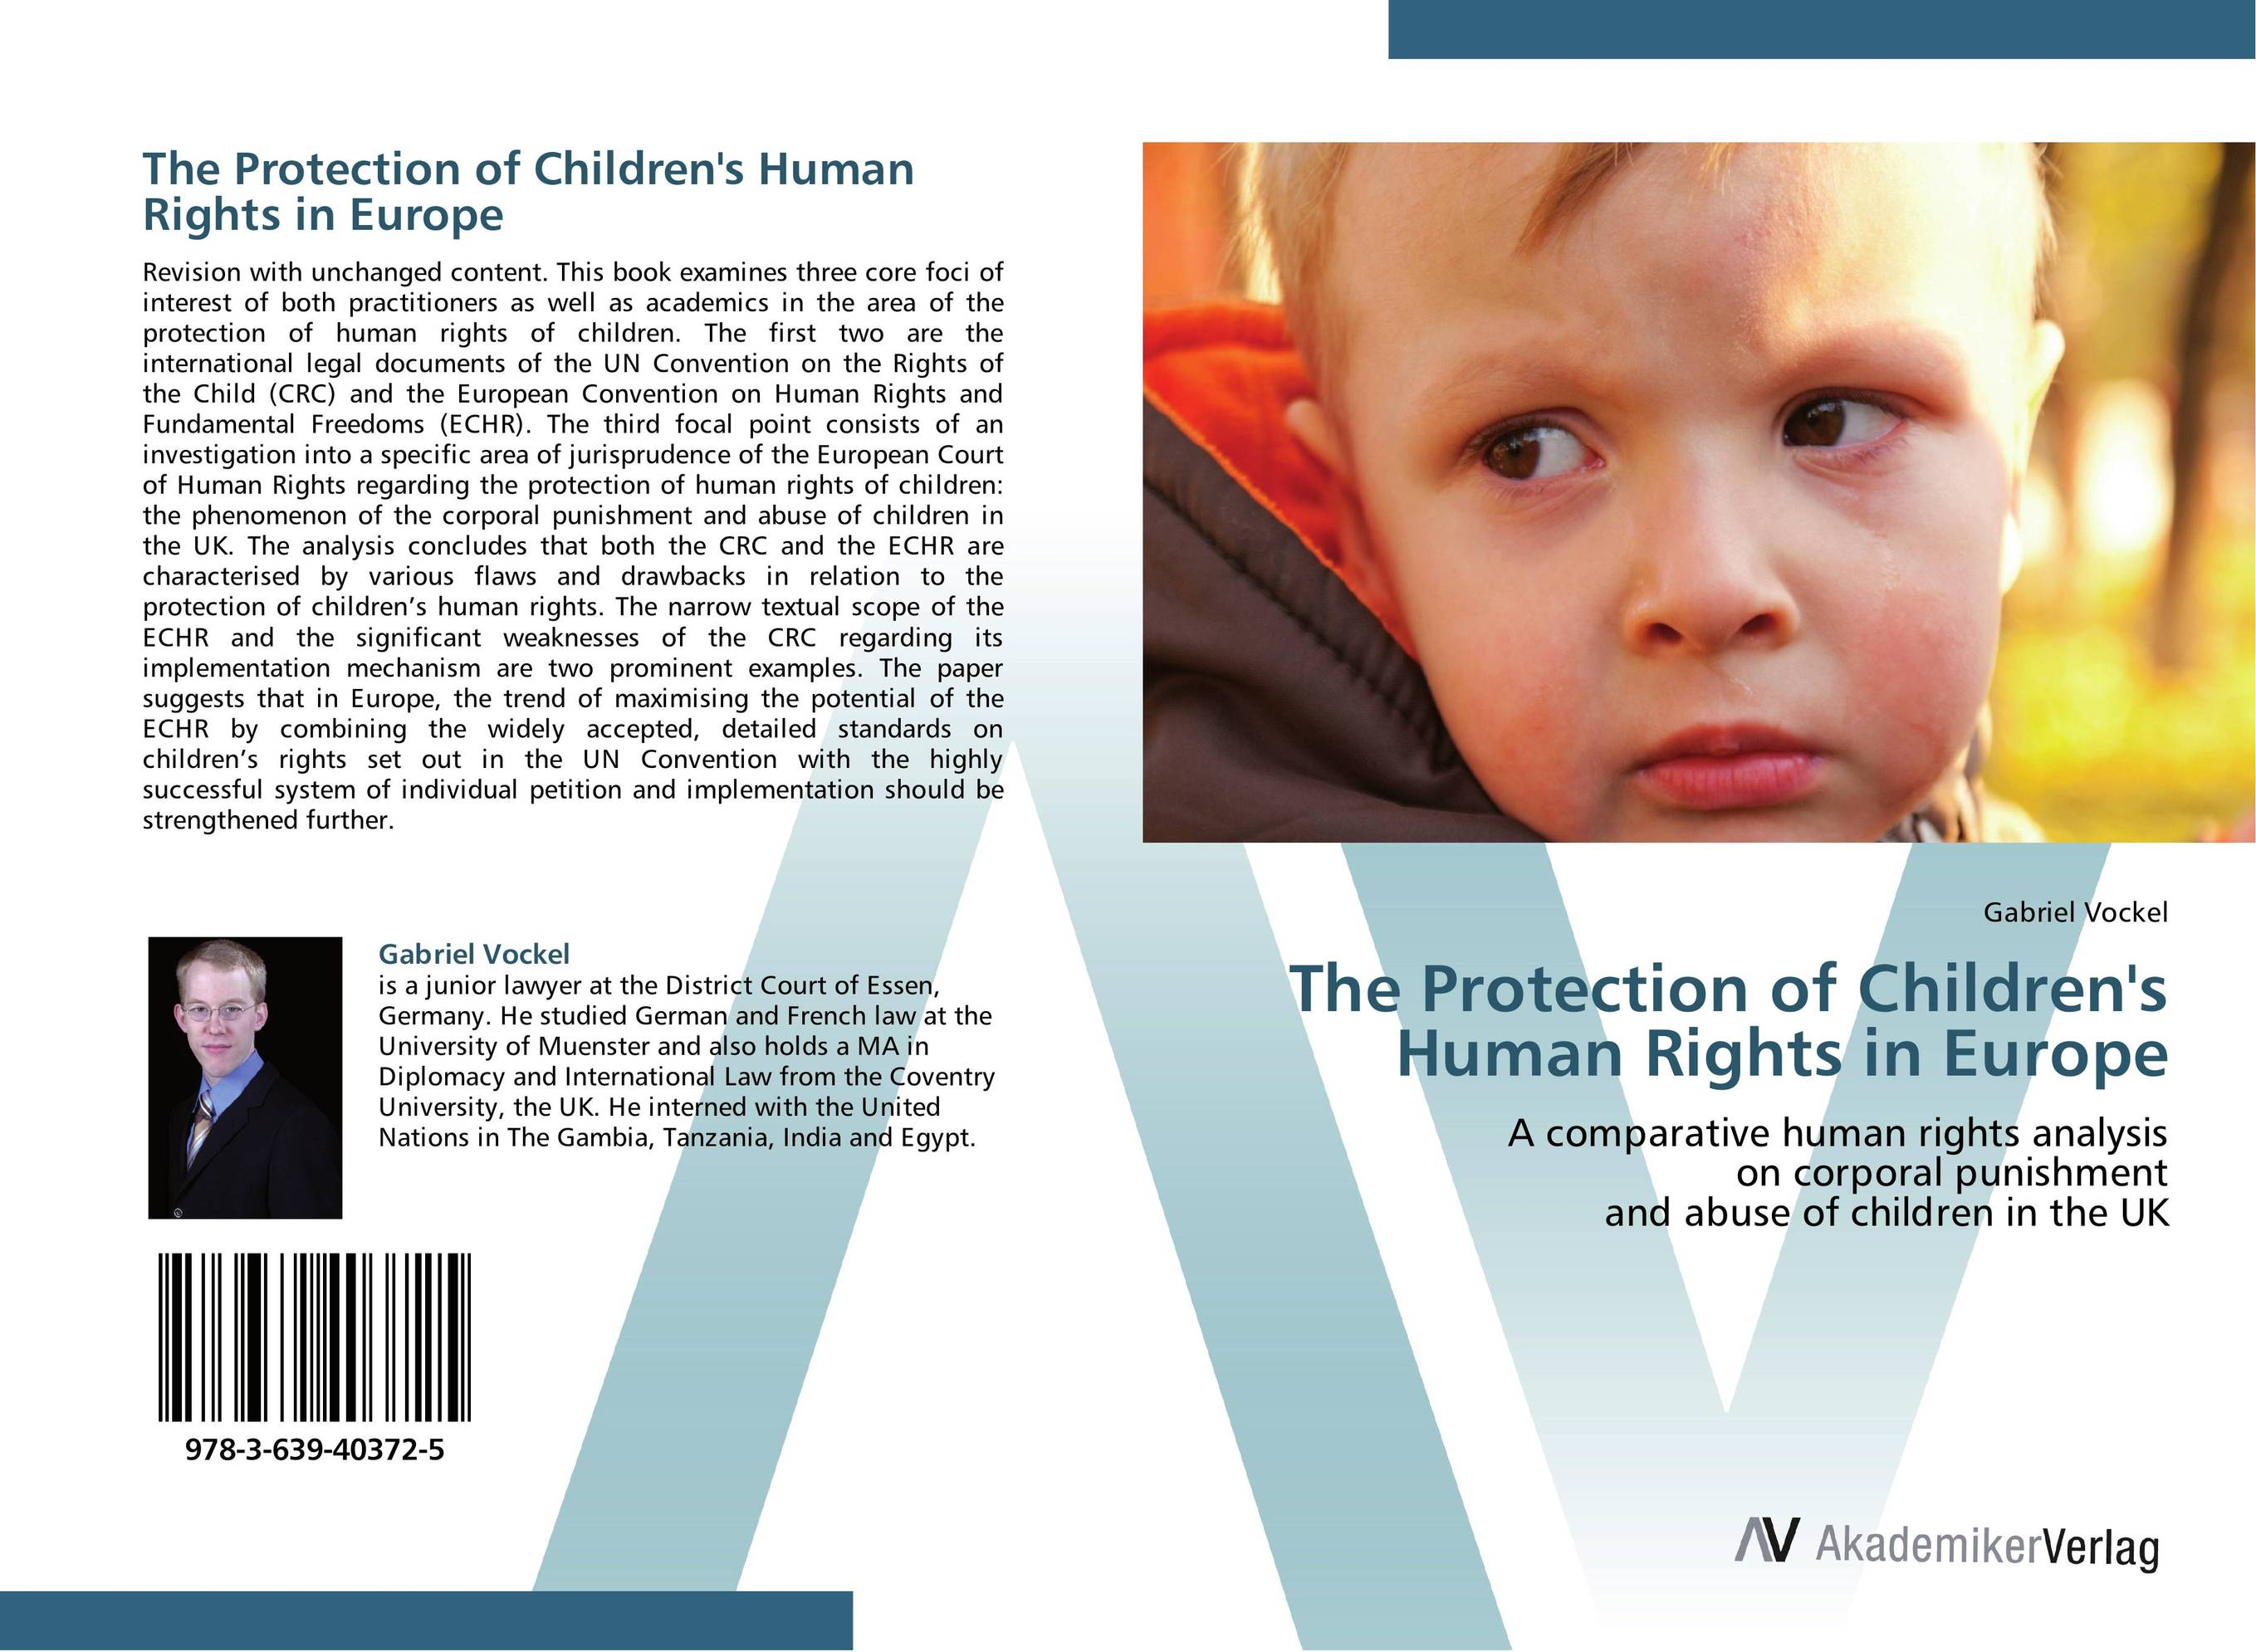 The Protection of Children's Human Rights in Europe victims stories and the advancement of human rights